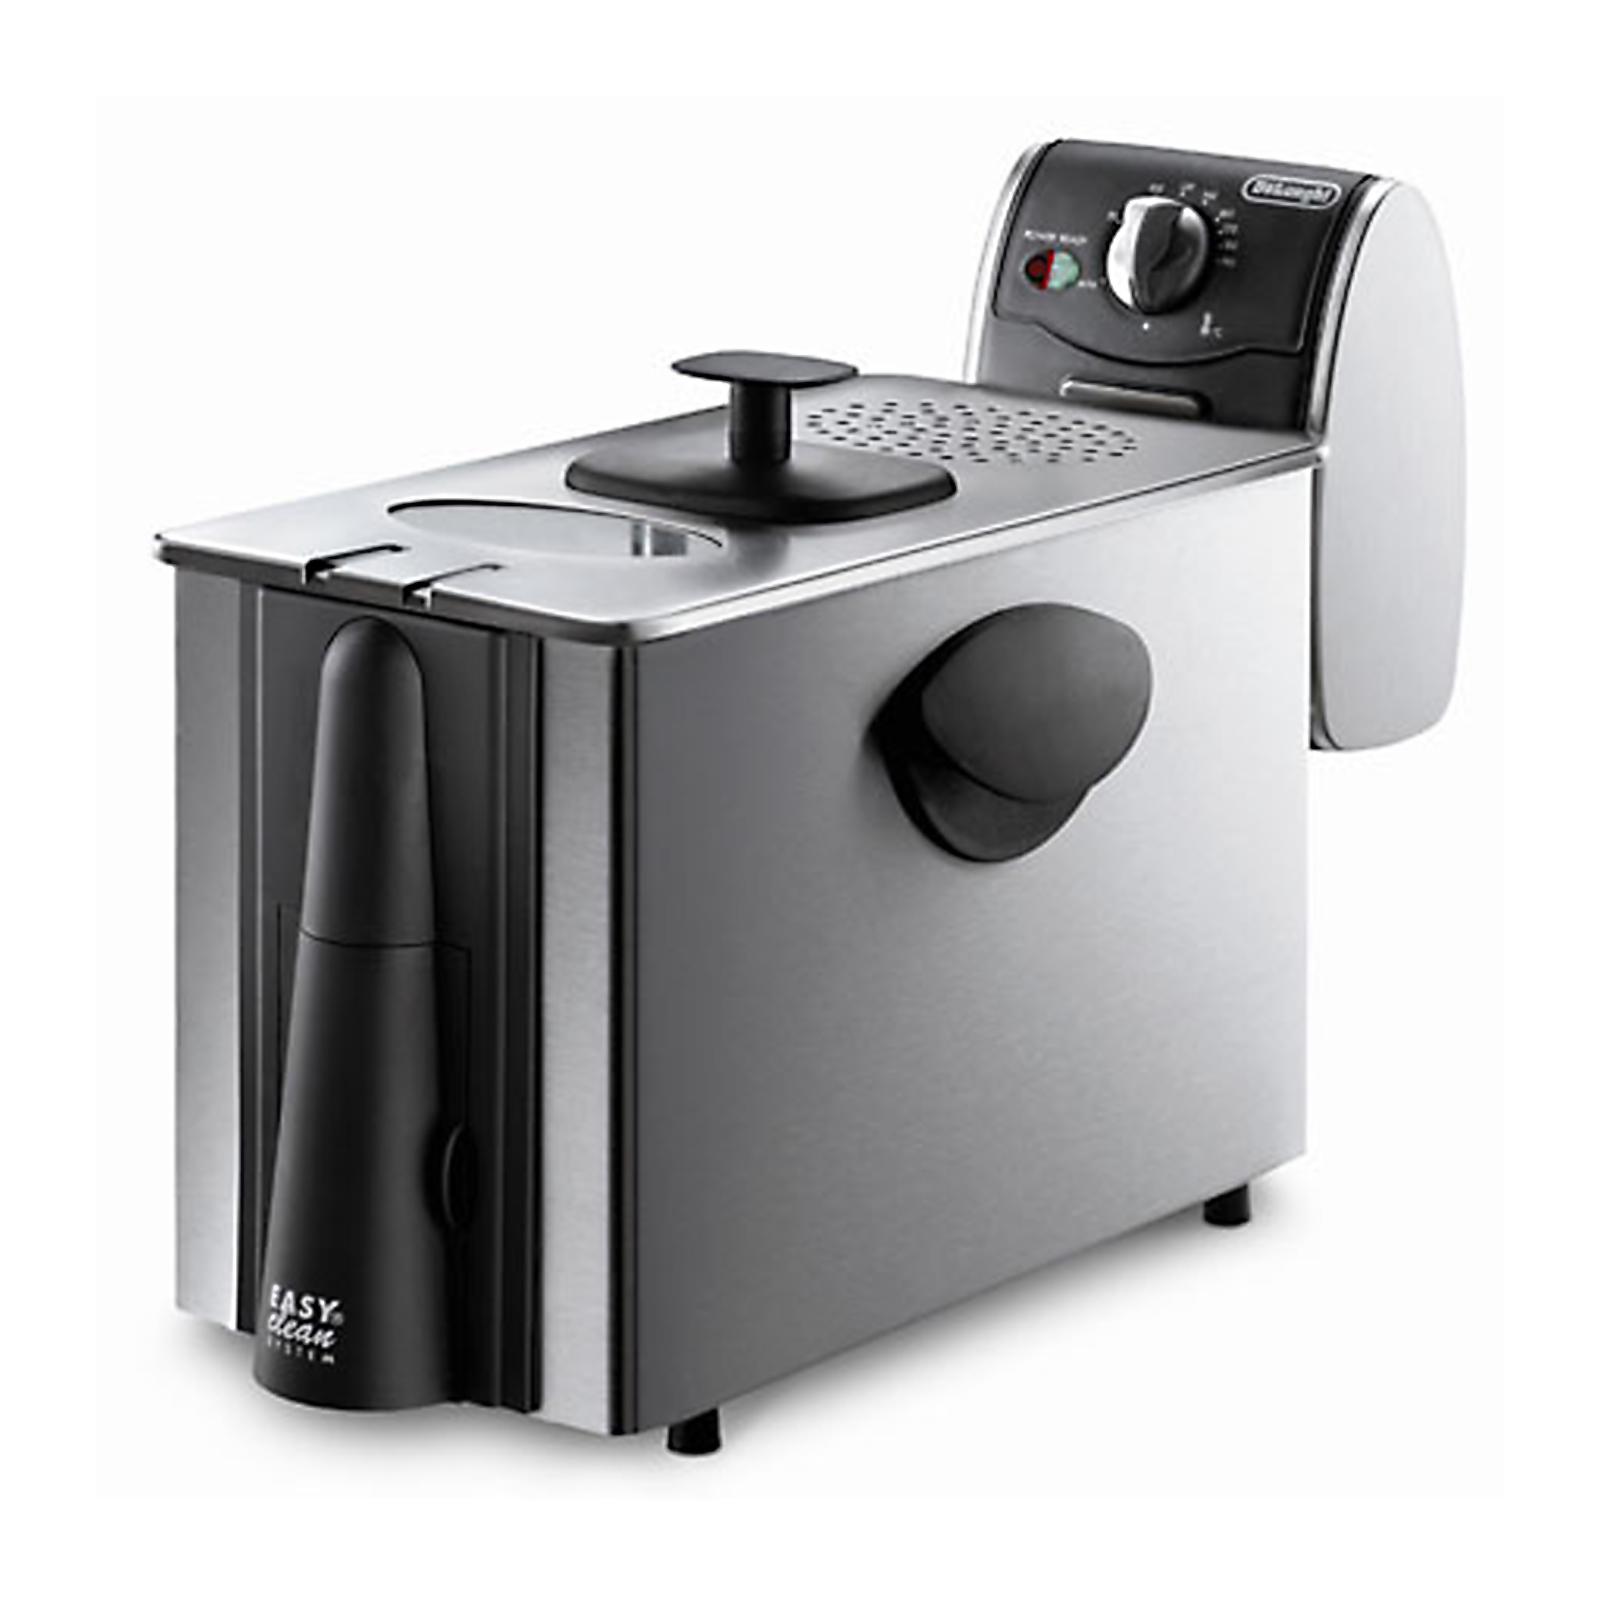 3 lbs Dual Zone Deep Fryer - Stainless Steel